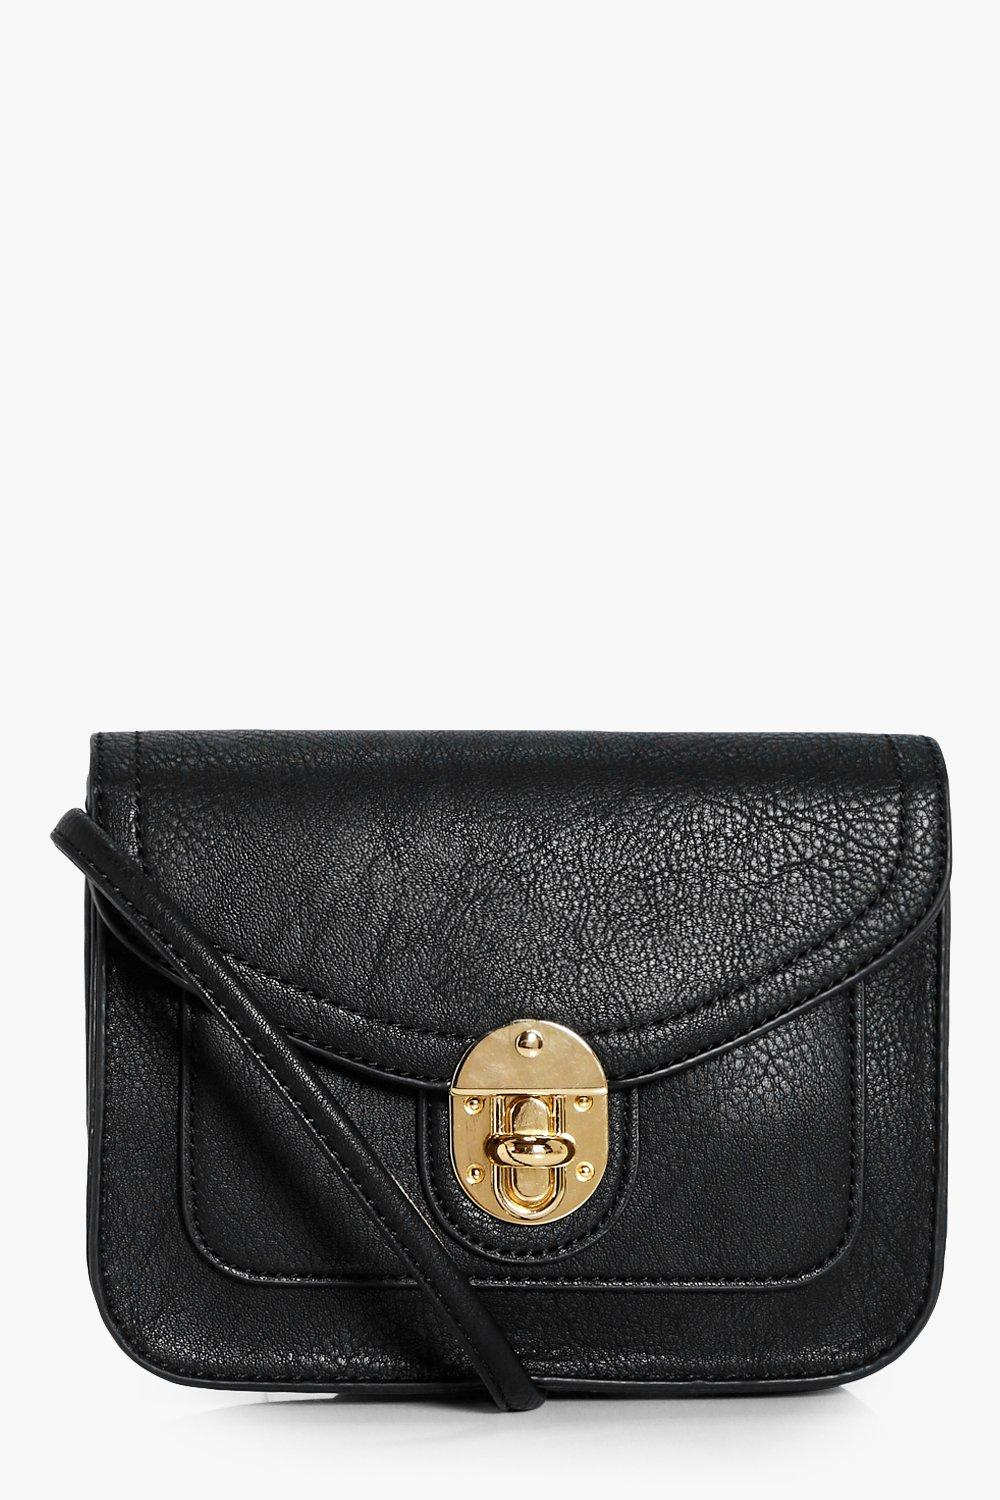 Lock Structured Cross Body - black - Natasha Lock